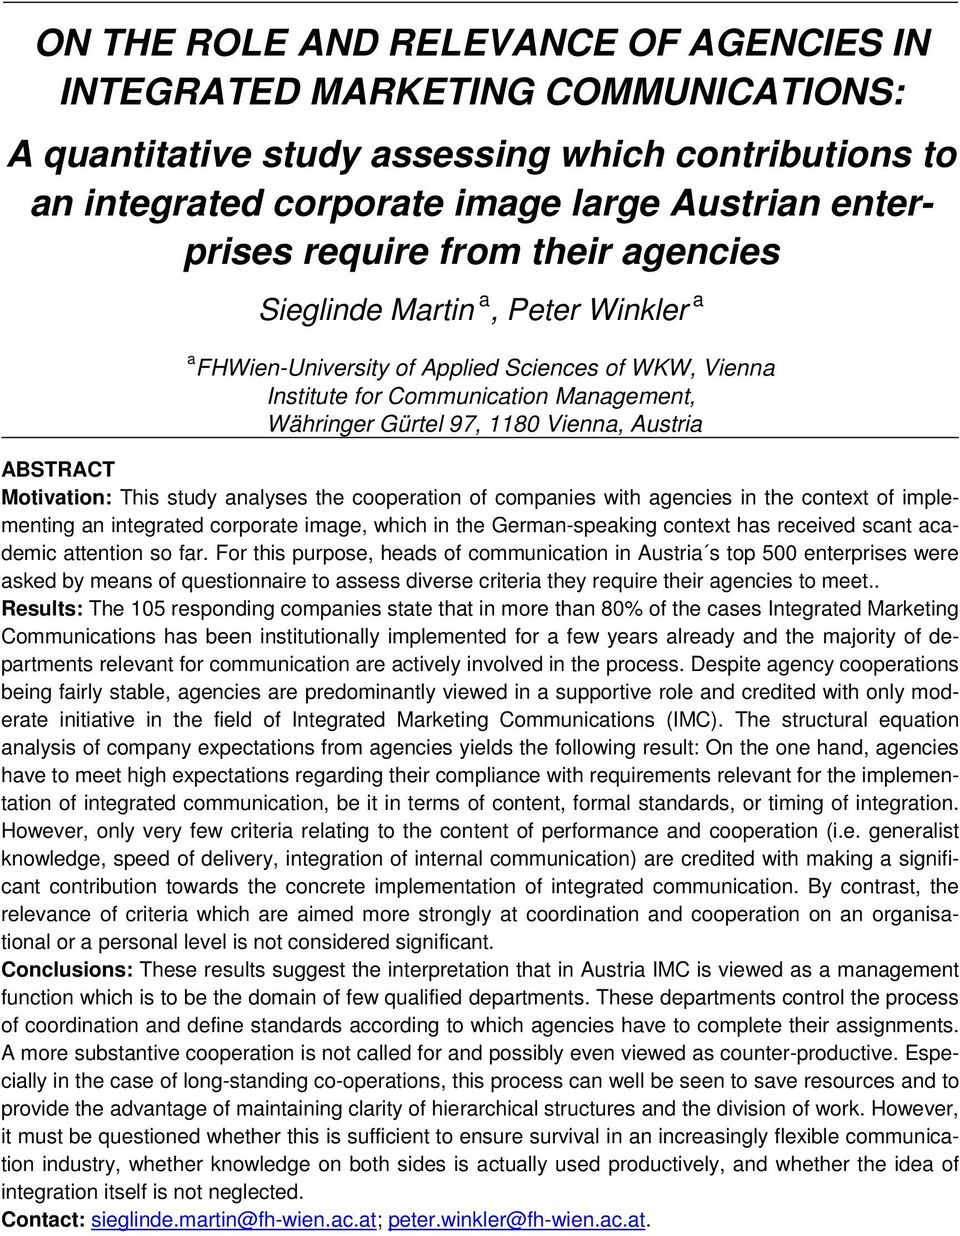 ABSTRACT Motivation: This study analyses the cooperation of companies with agencies in the context of implementing an integrated corporate image, which in the German-speaking context has received